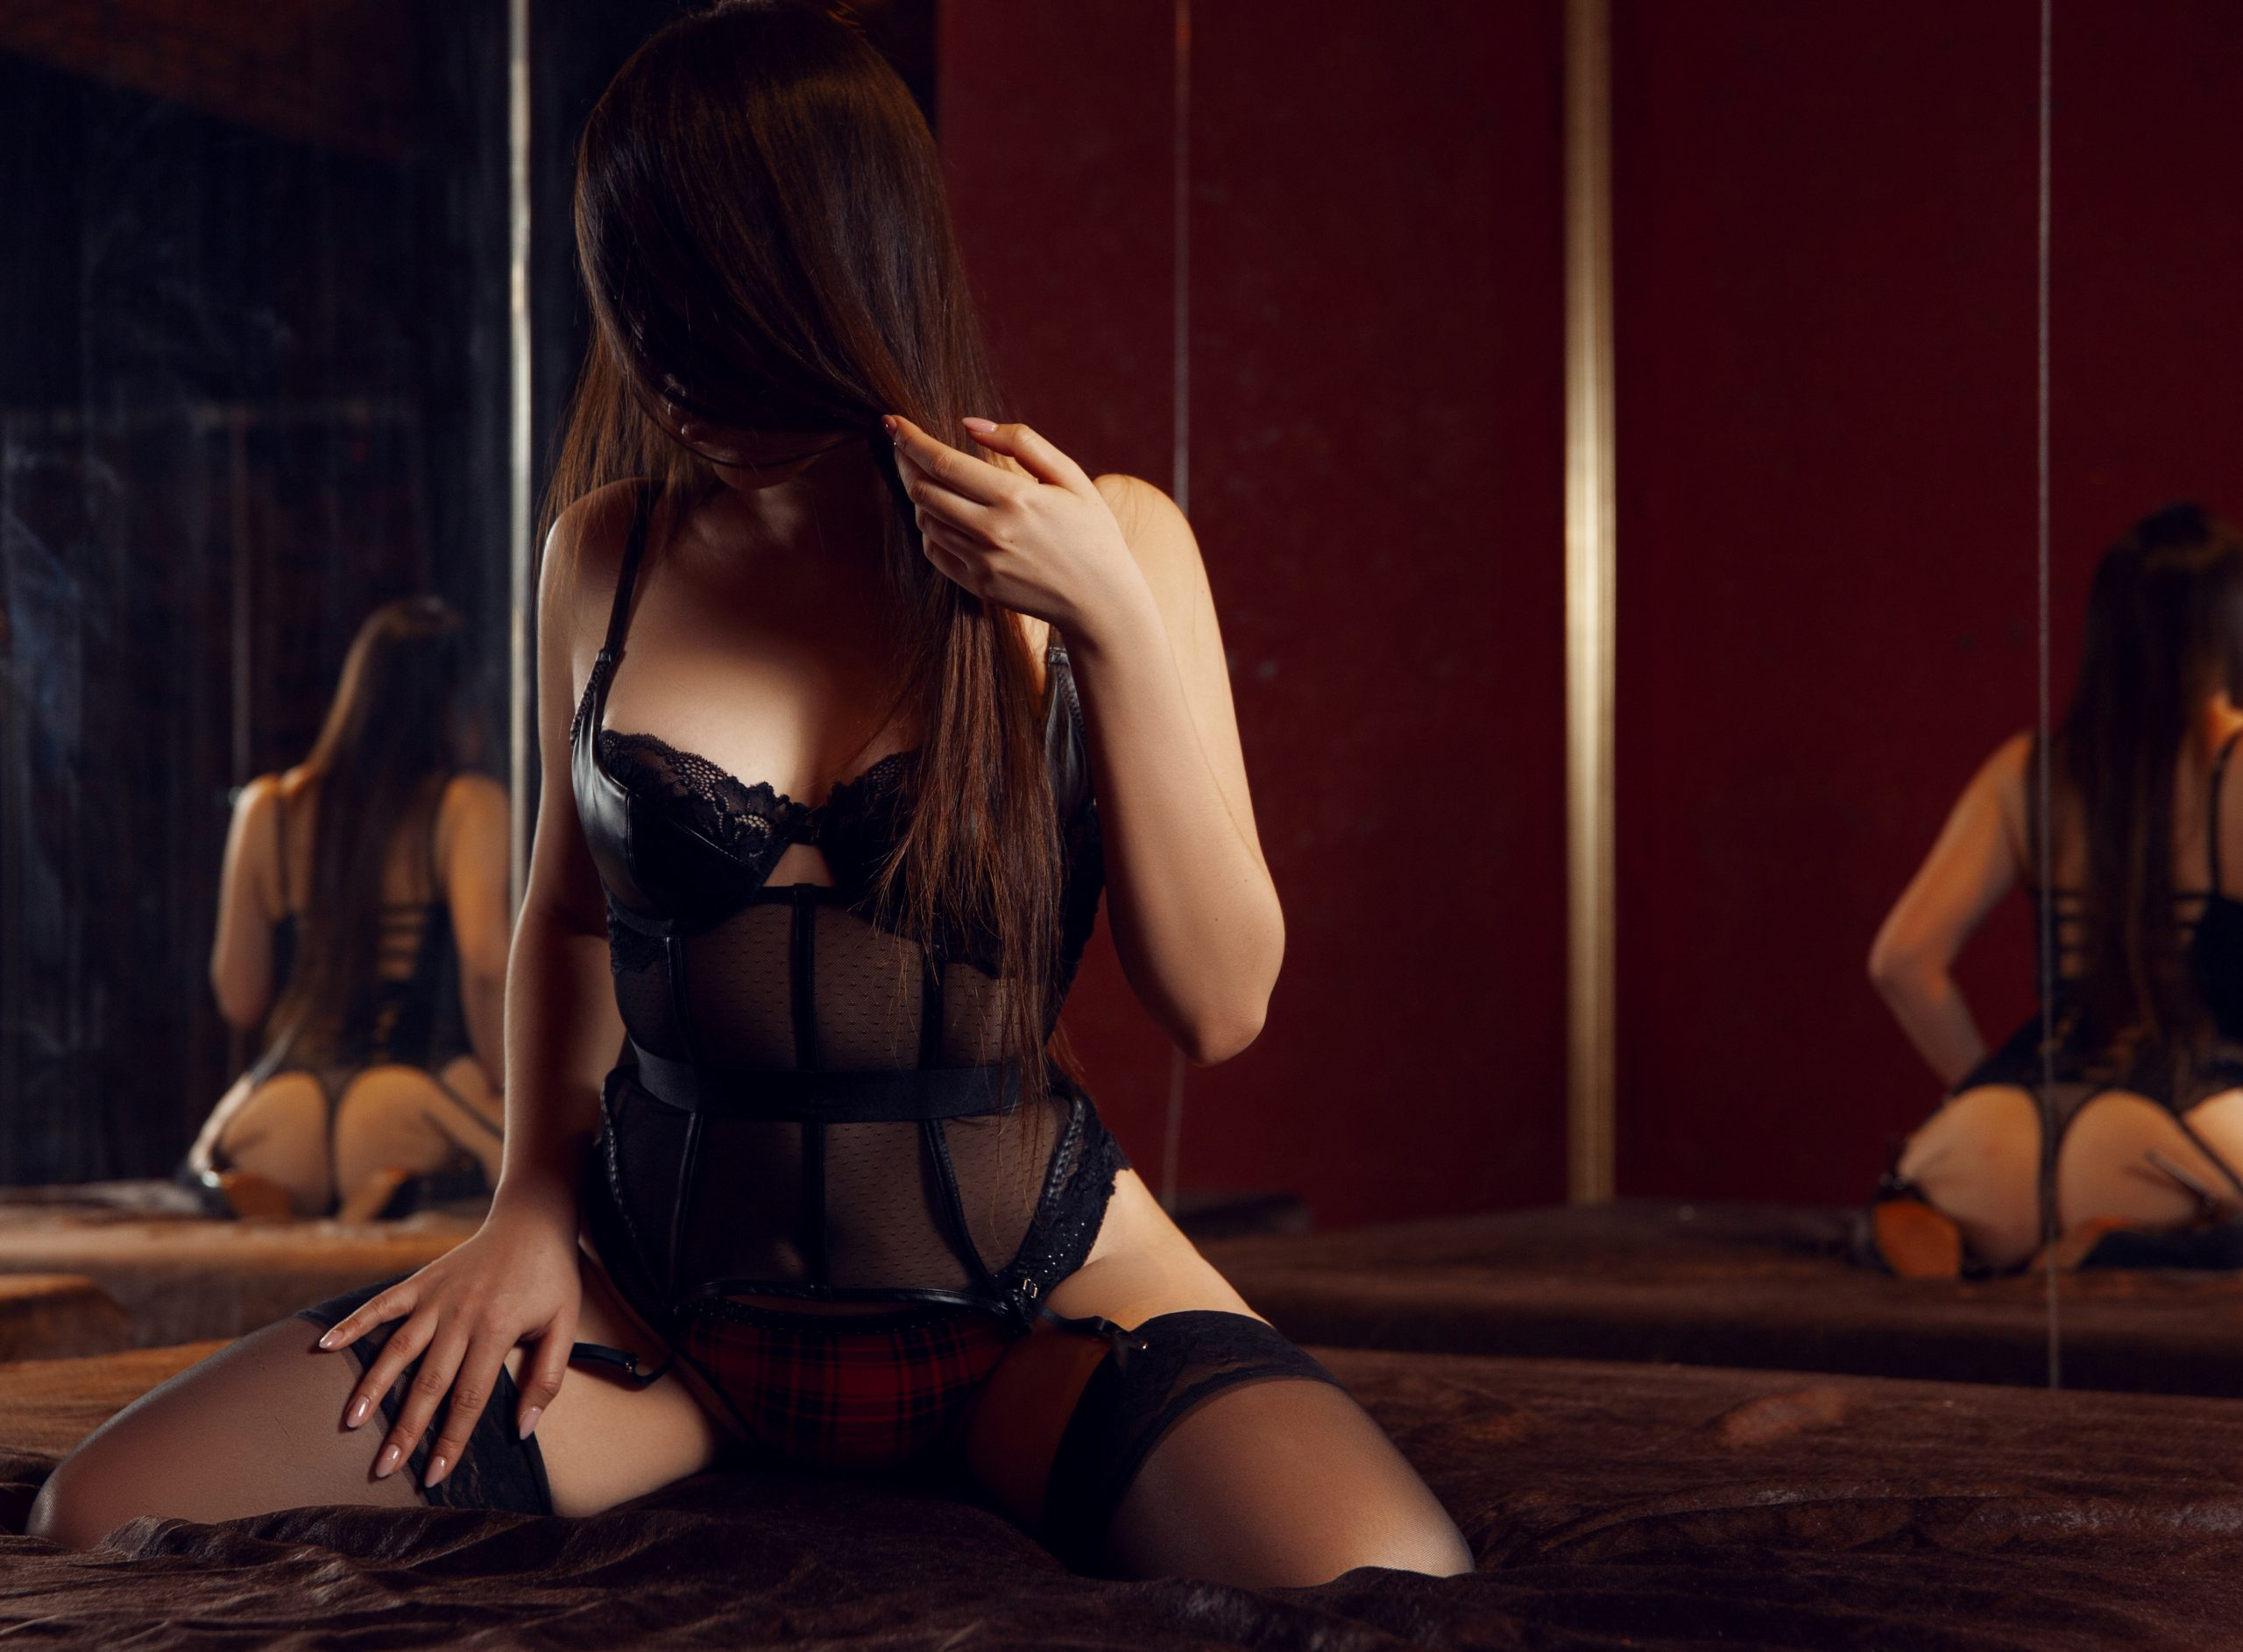 Lola erotic massage Prague